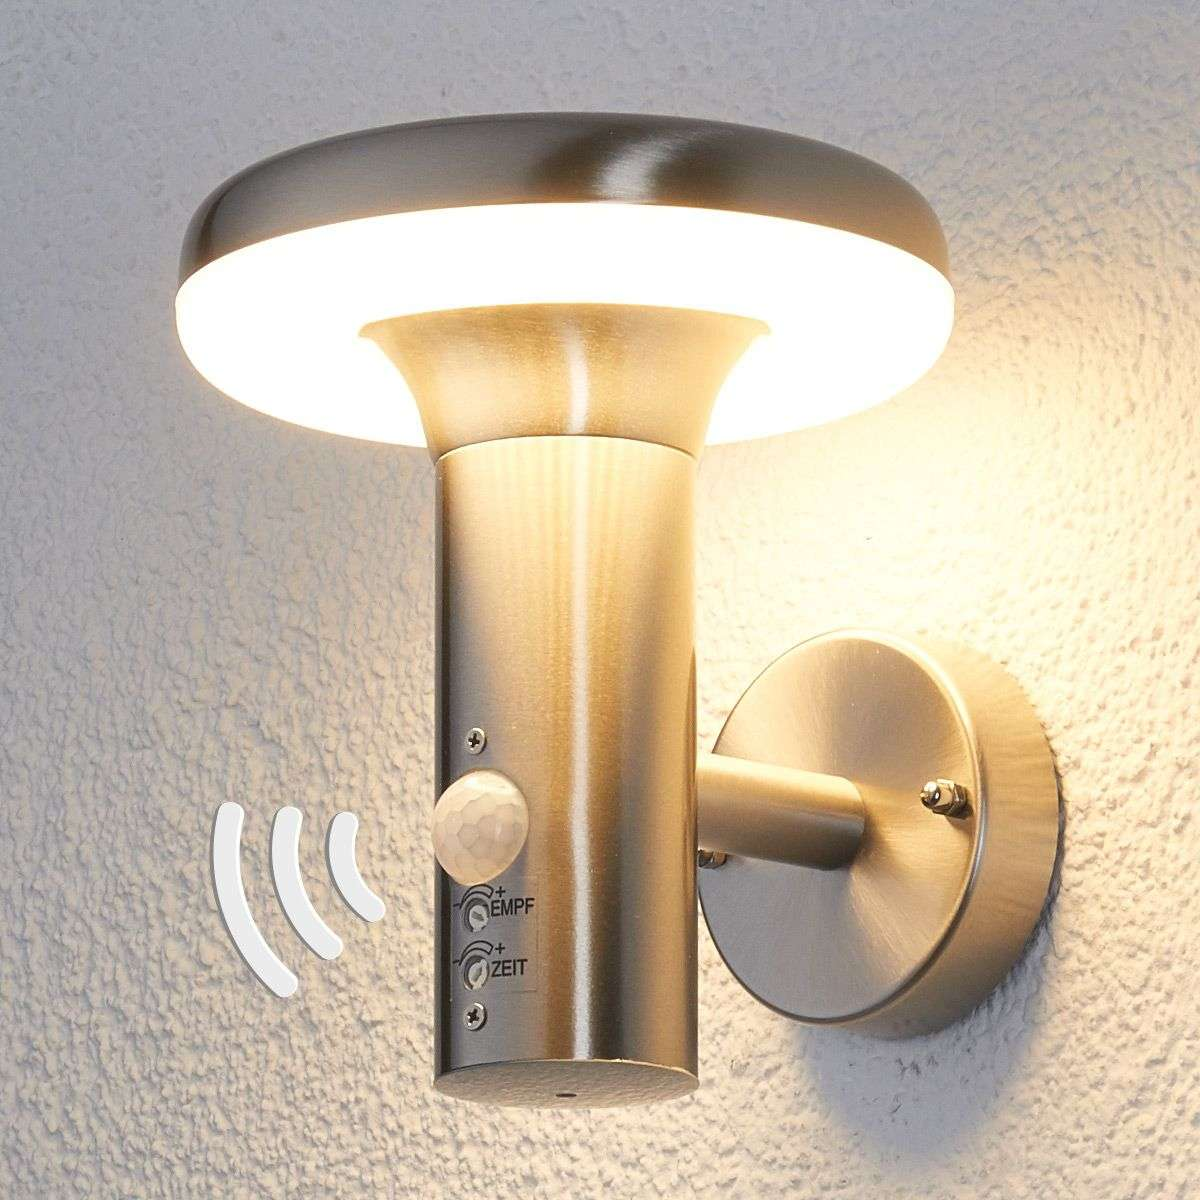 Pepina motion sensor led outdoor wall light lights pepina motion sensor led outdoor wall light aloadofball Choice Image